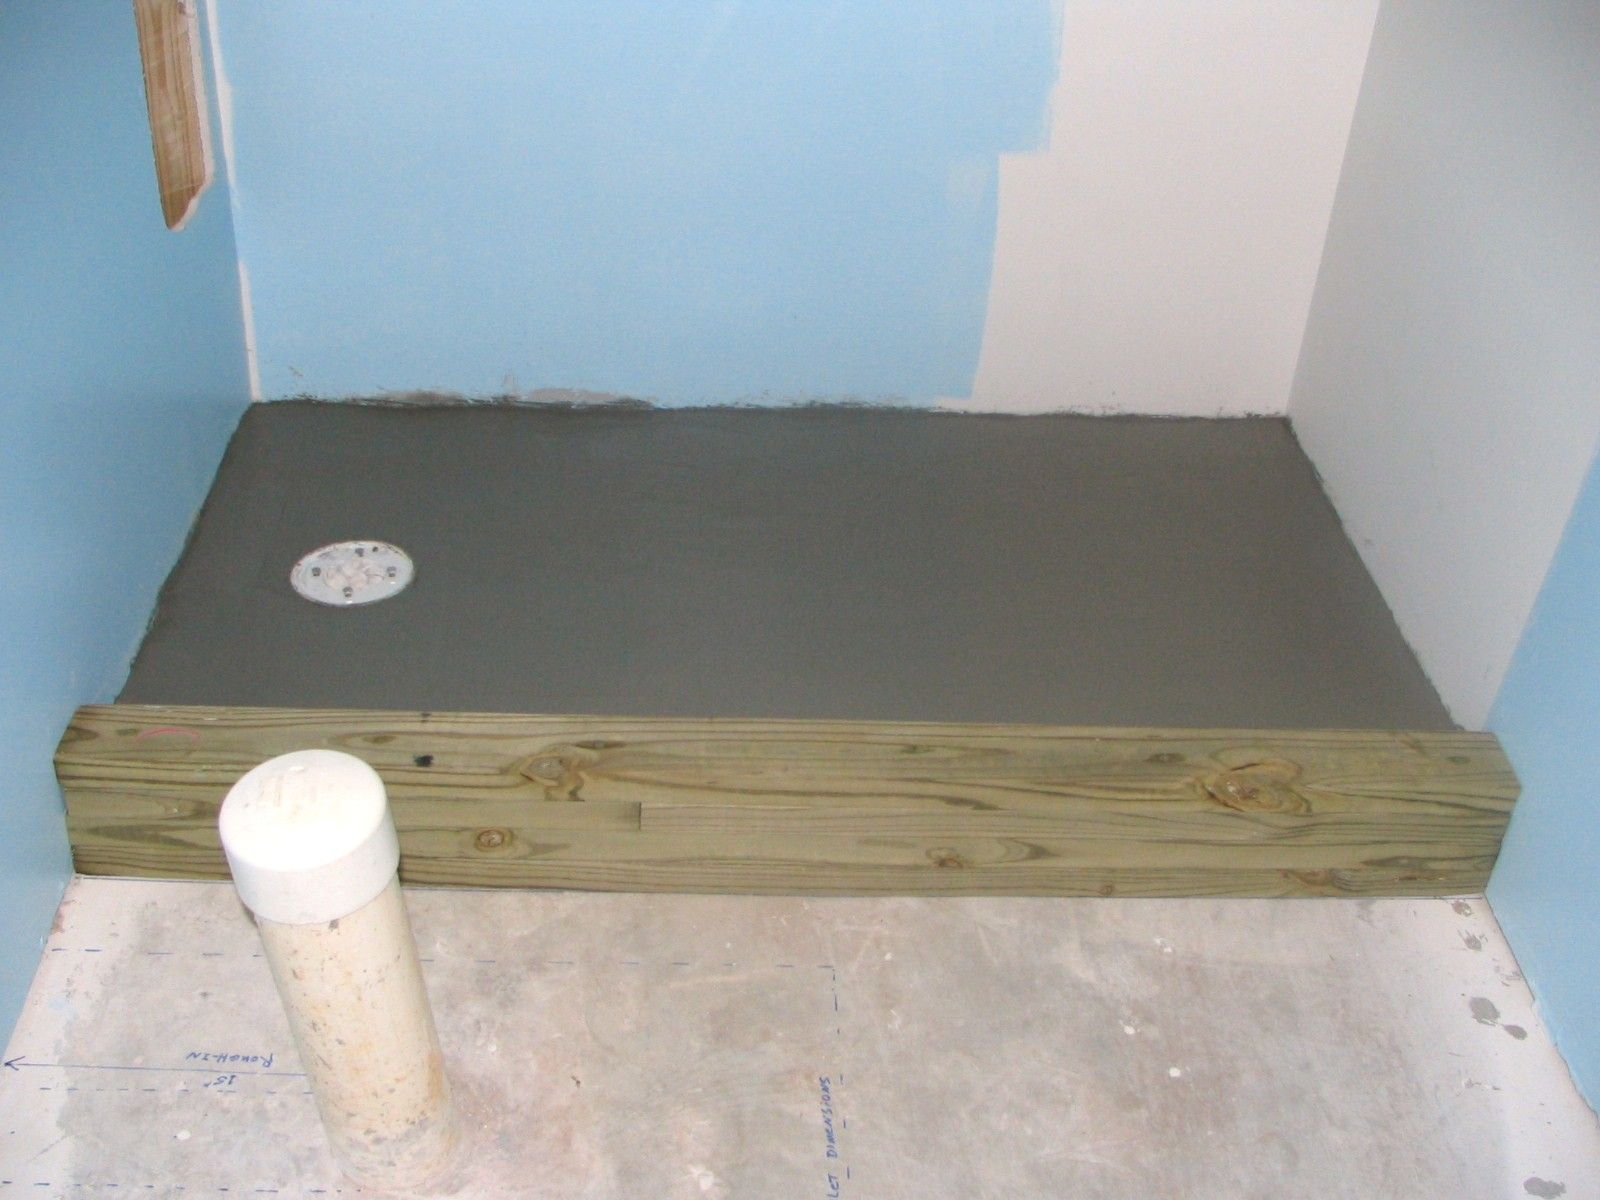 How To Finish A Basement Bathroom Build The Tile Shower Pan I Install The Shower Curb Mortar